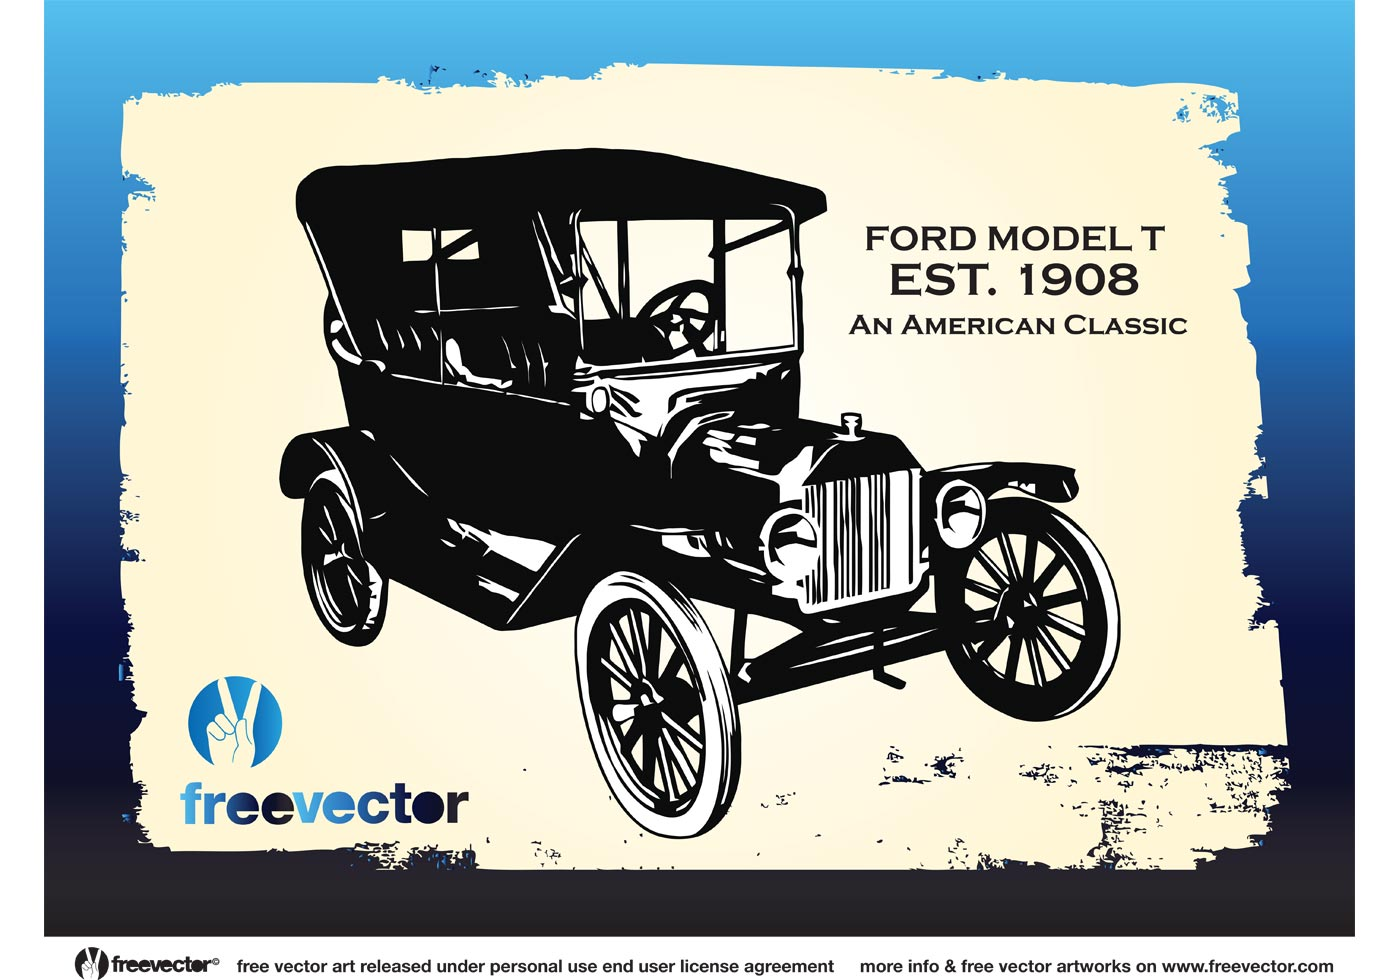 Vintage Ford Car - Download Free Vector Art, Stock Graphics & Images